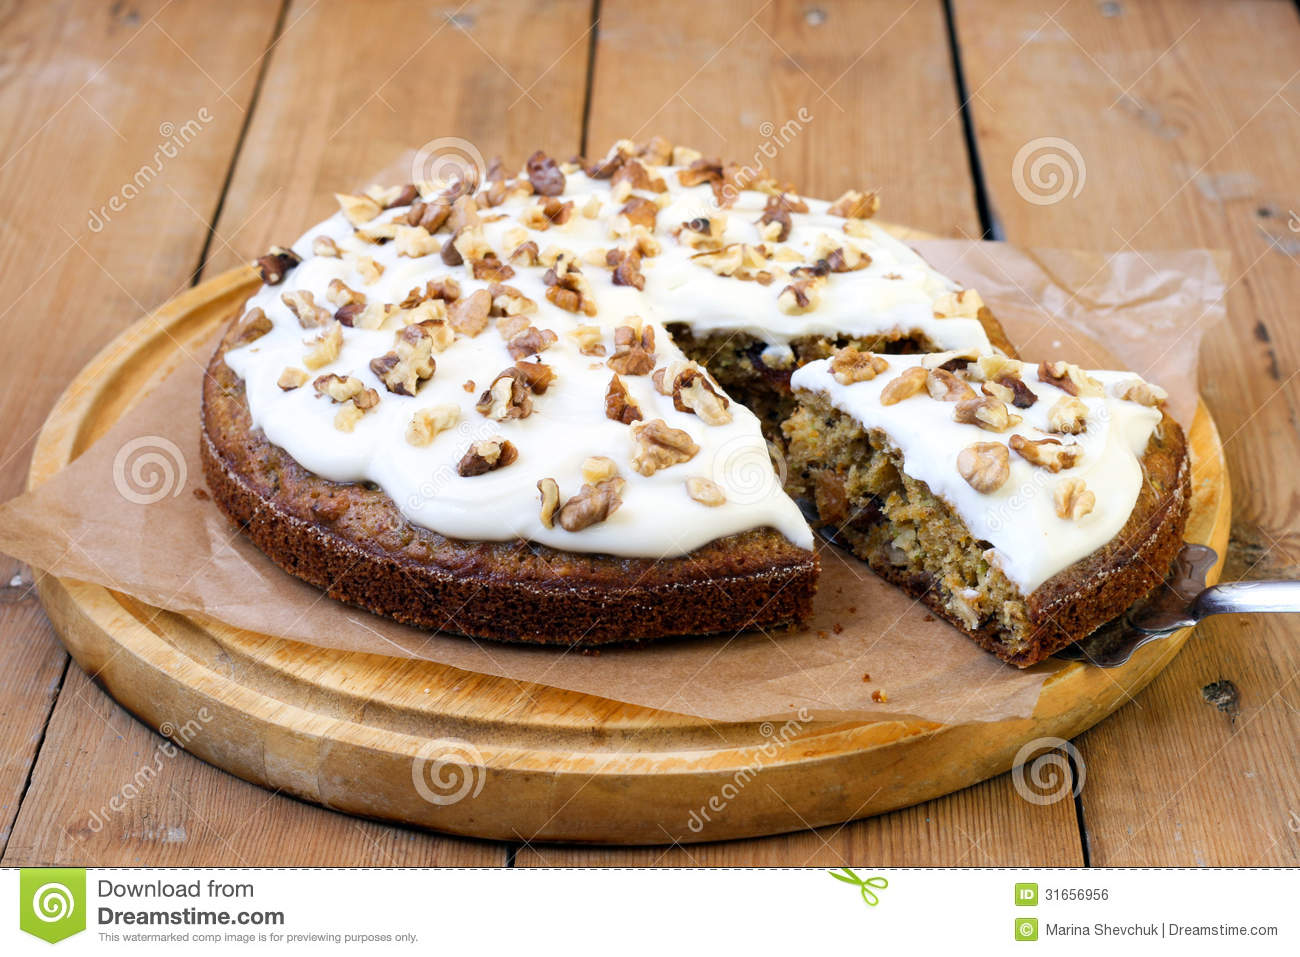 Courgette Cake With Cream Cheese Frosting